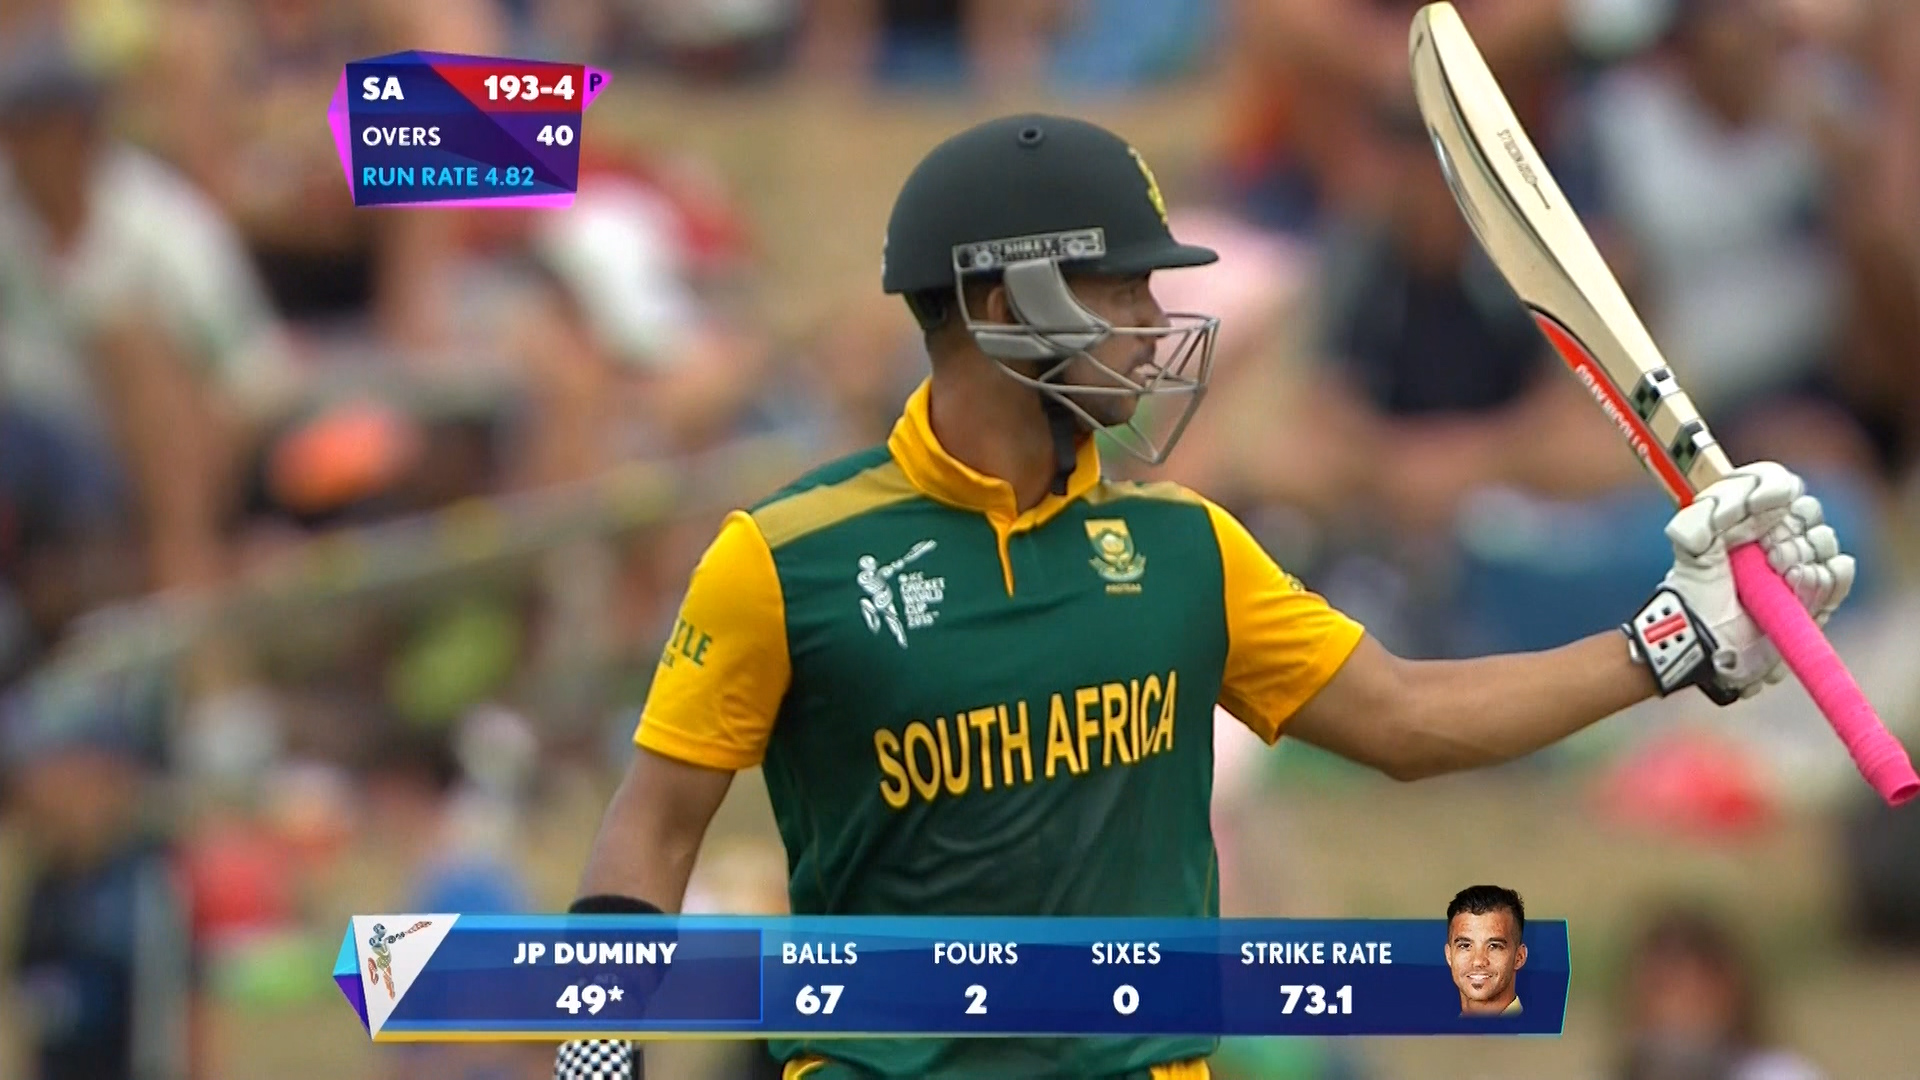 Match Hero – JP Duminy – SA vs ZIM